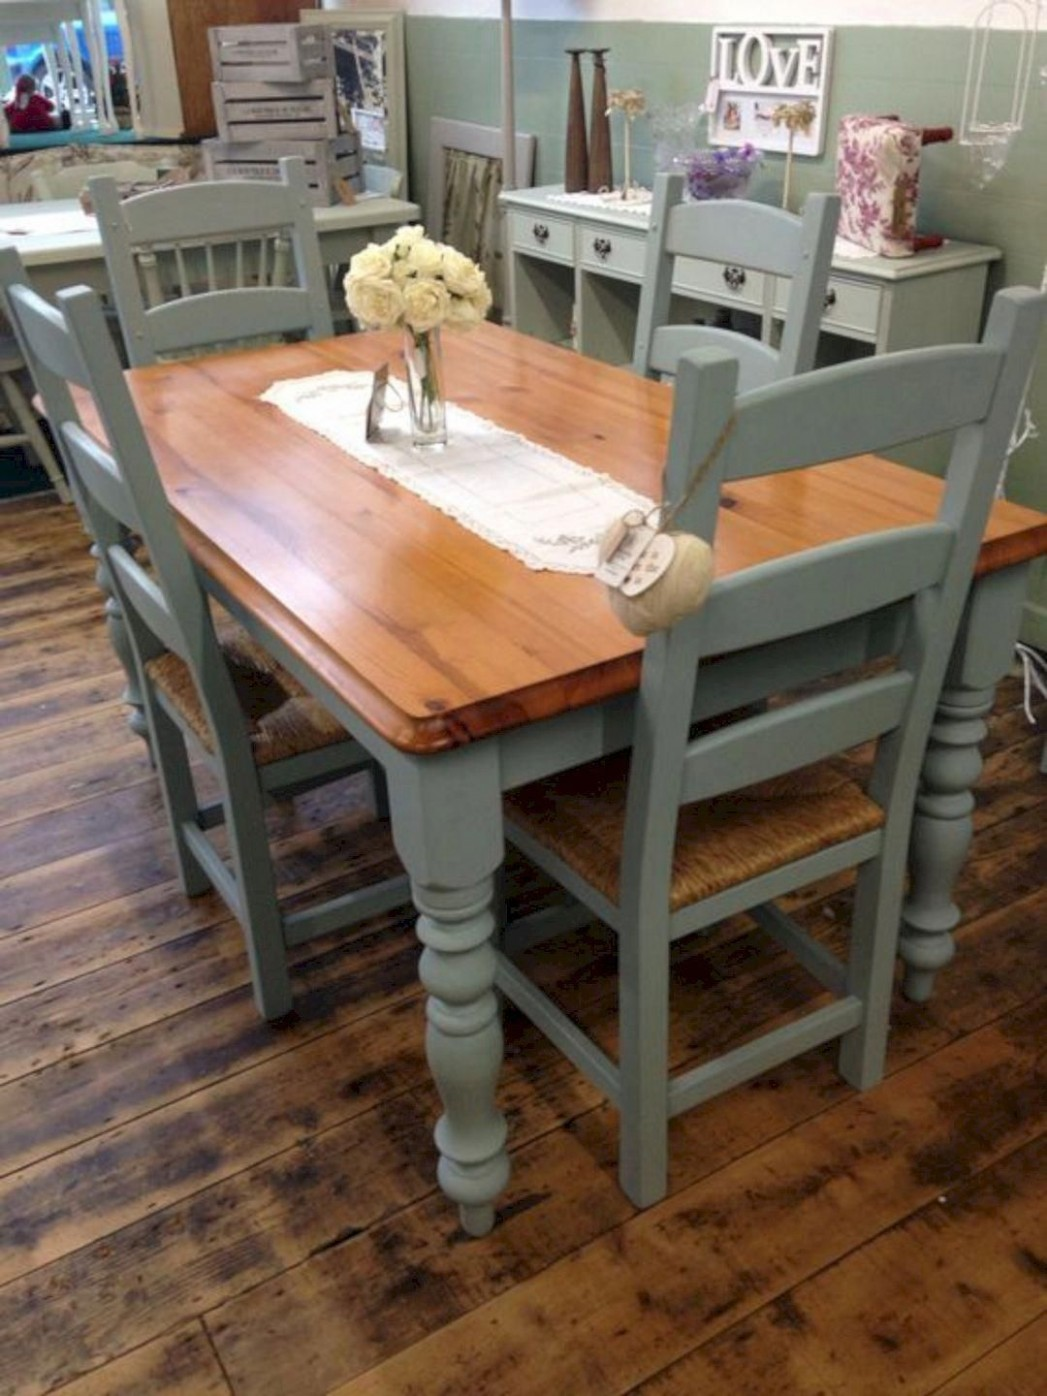 Upcycled Dining Table Ideas  Repurposed Dresser Ideas  Repurpose  - Dining Room Upcycle Ideas